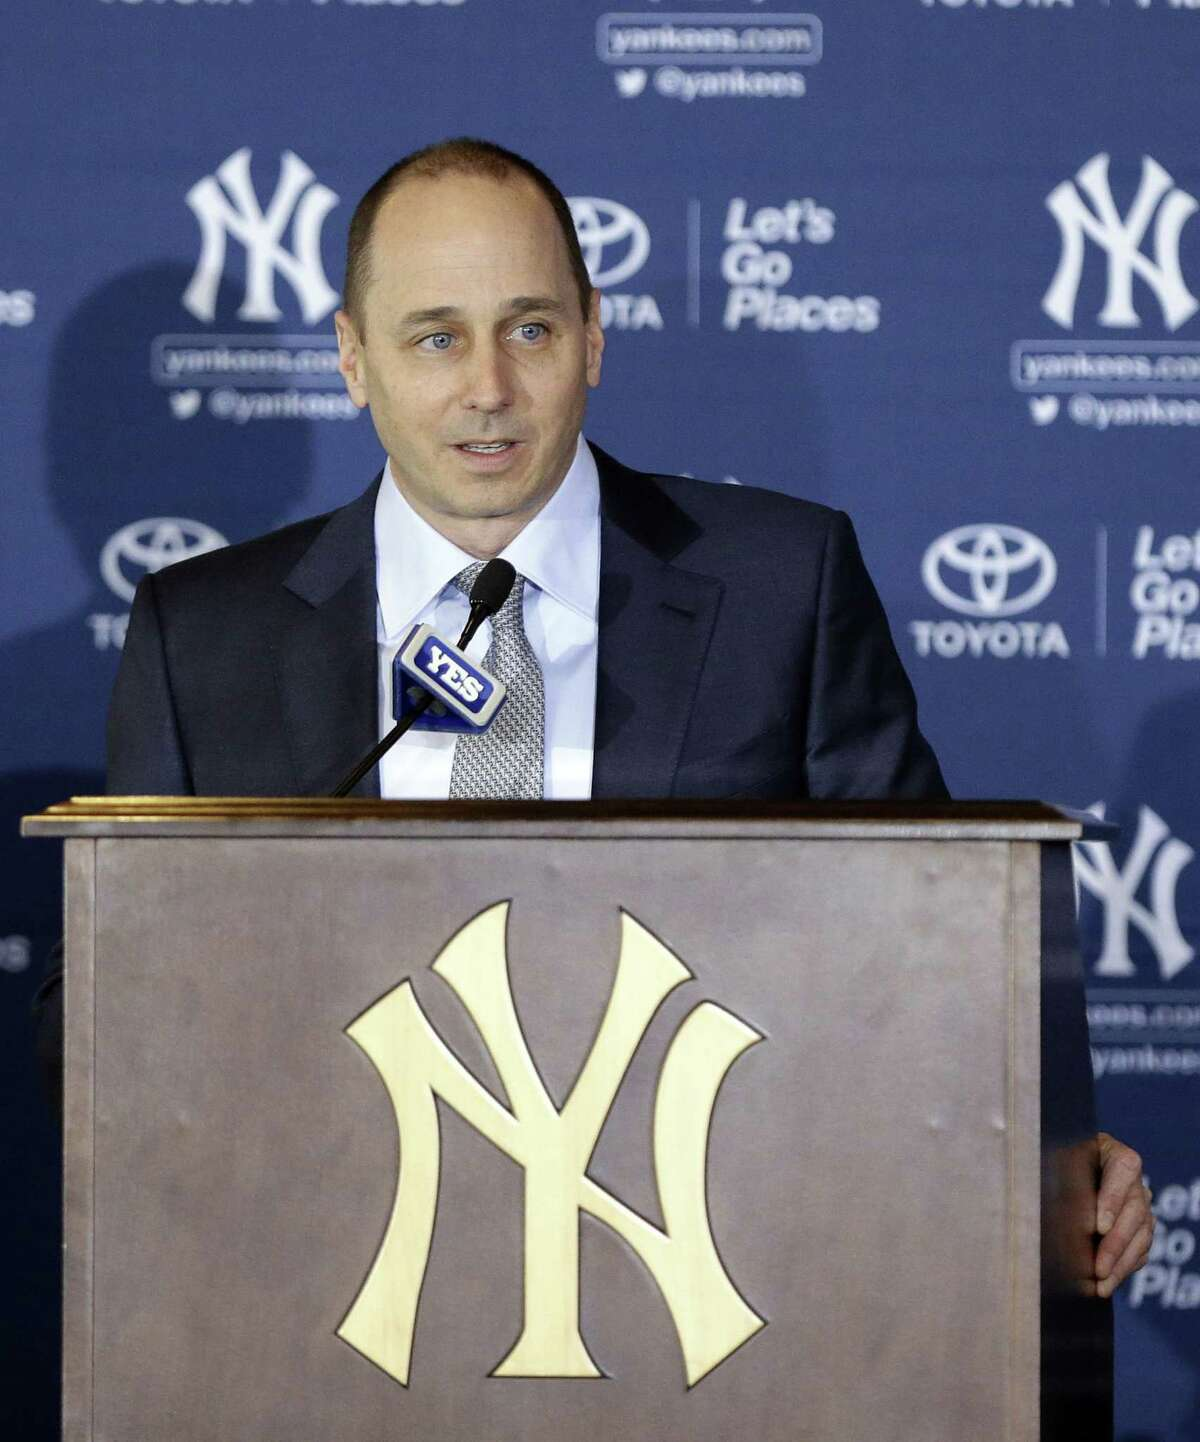 The New York Yankees announced Friday they have re-signed general manager Brian Cashman to a three-year contract.